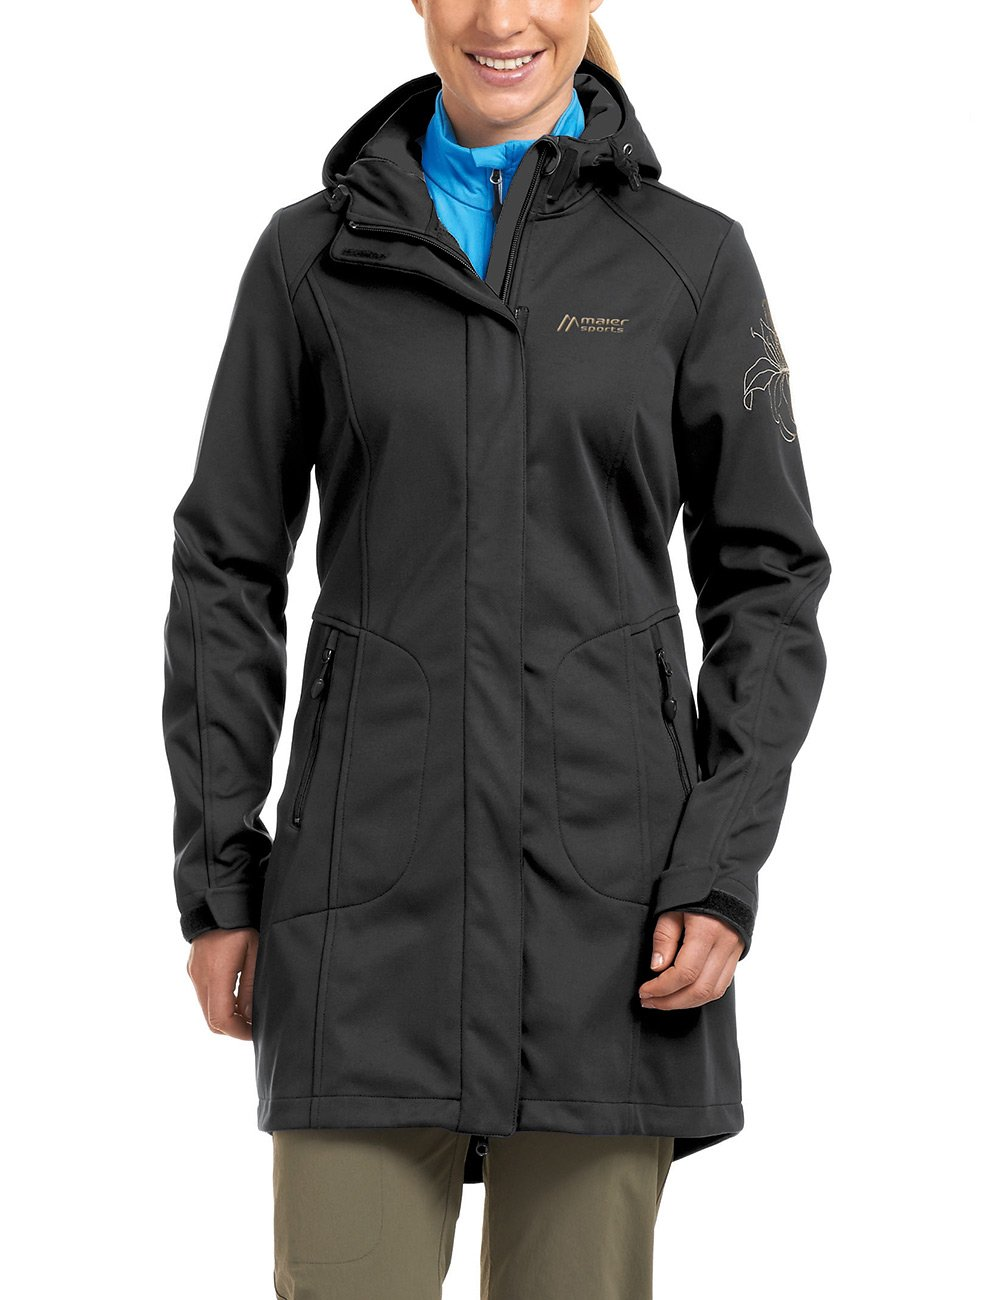 maier sports Damen Softshell Mantel Rigel günstig kaufen